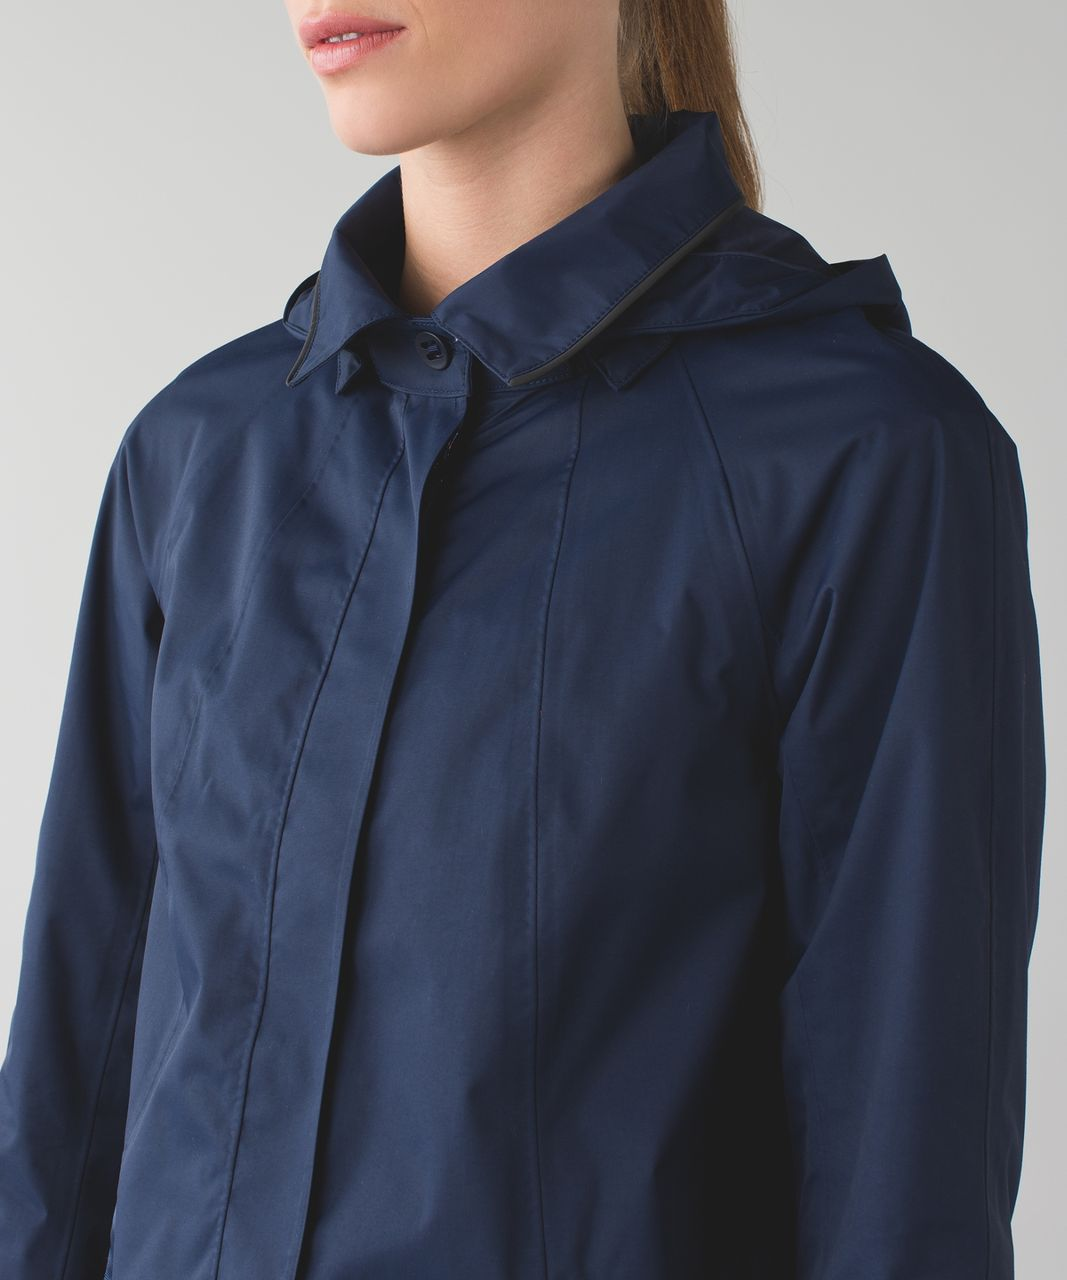 Lululemon Rain On Jacket - Deep Navy